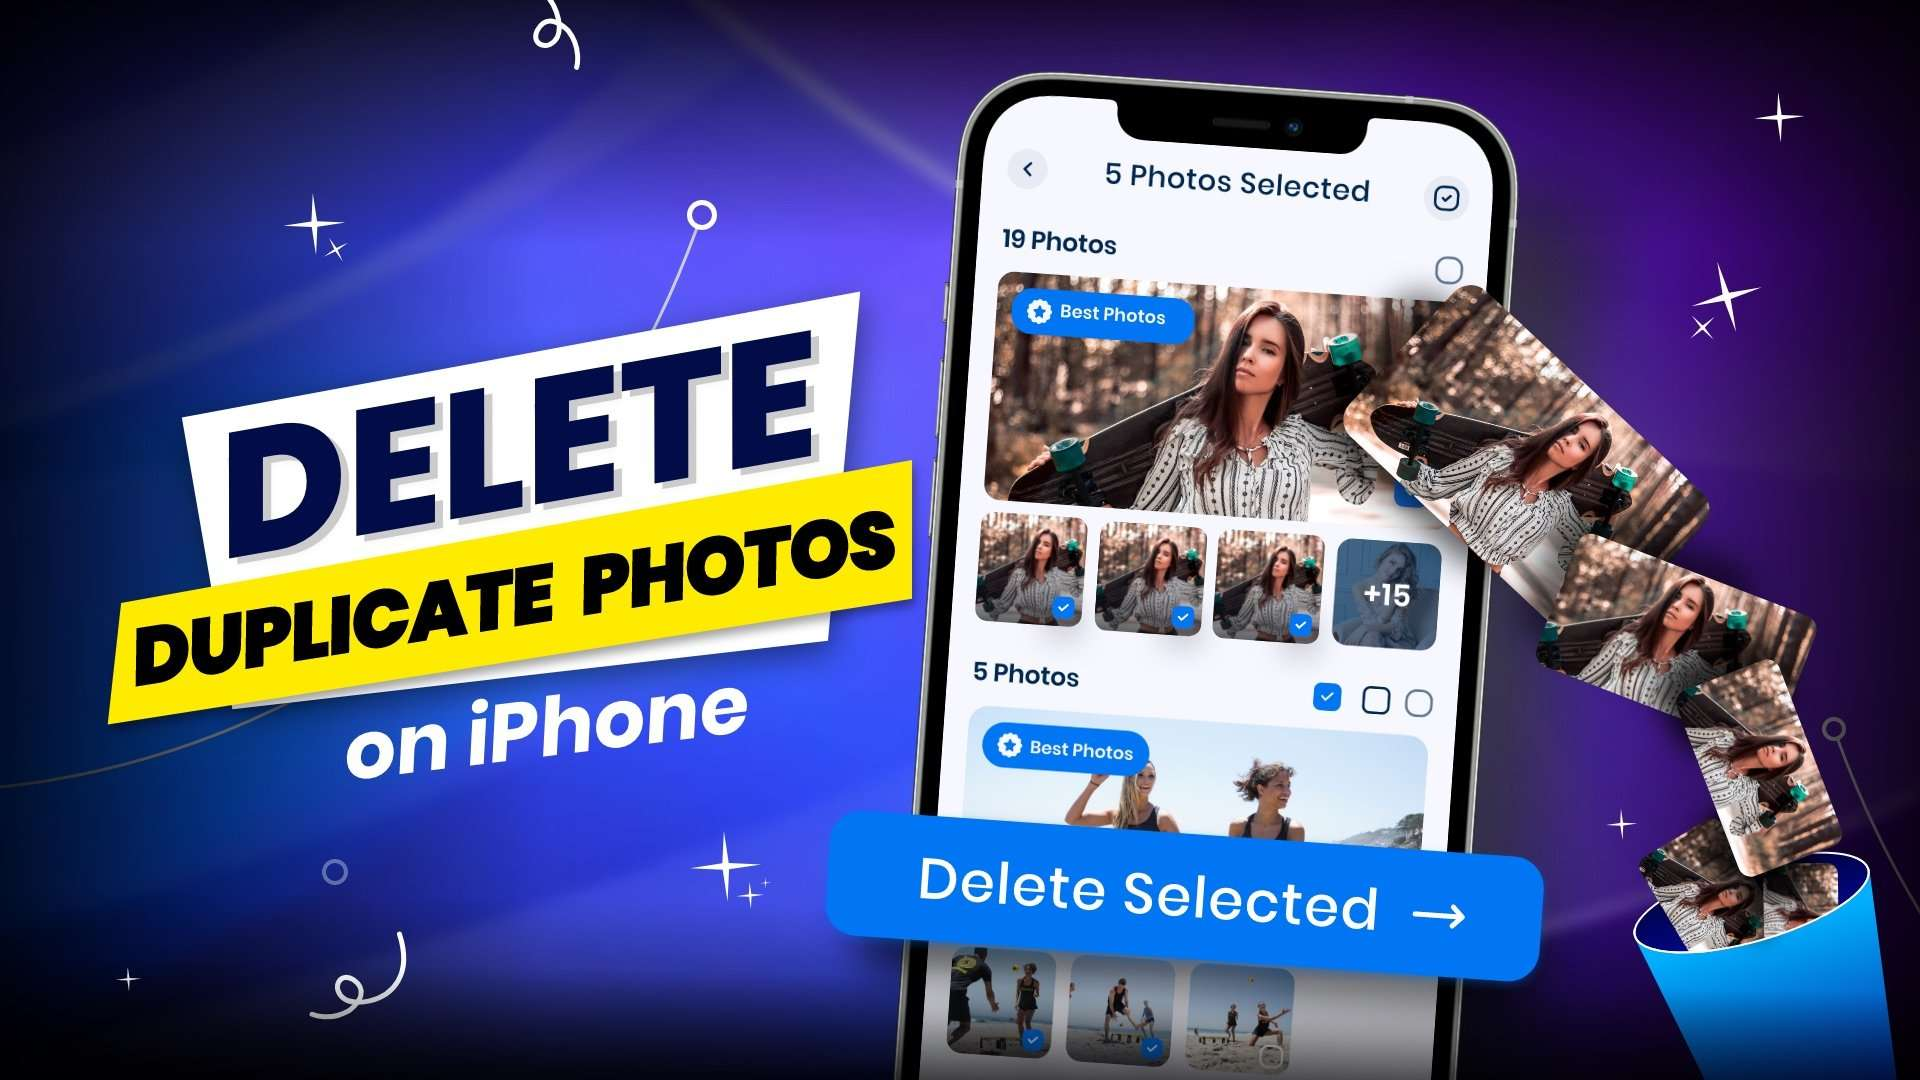 How to delete duplicate photos on iPhone